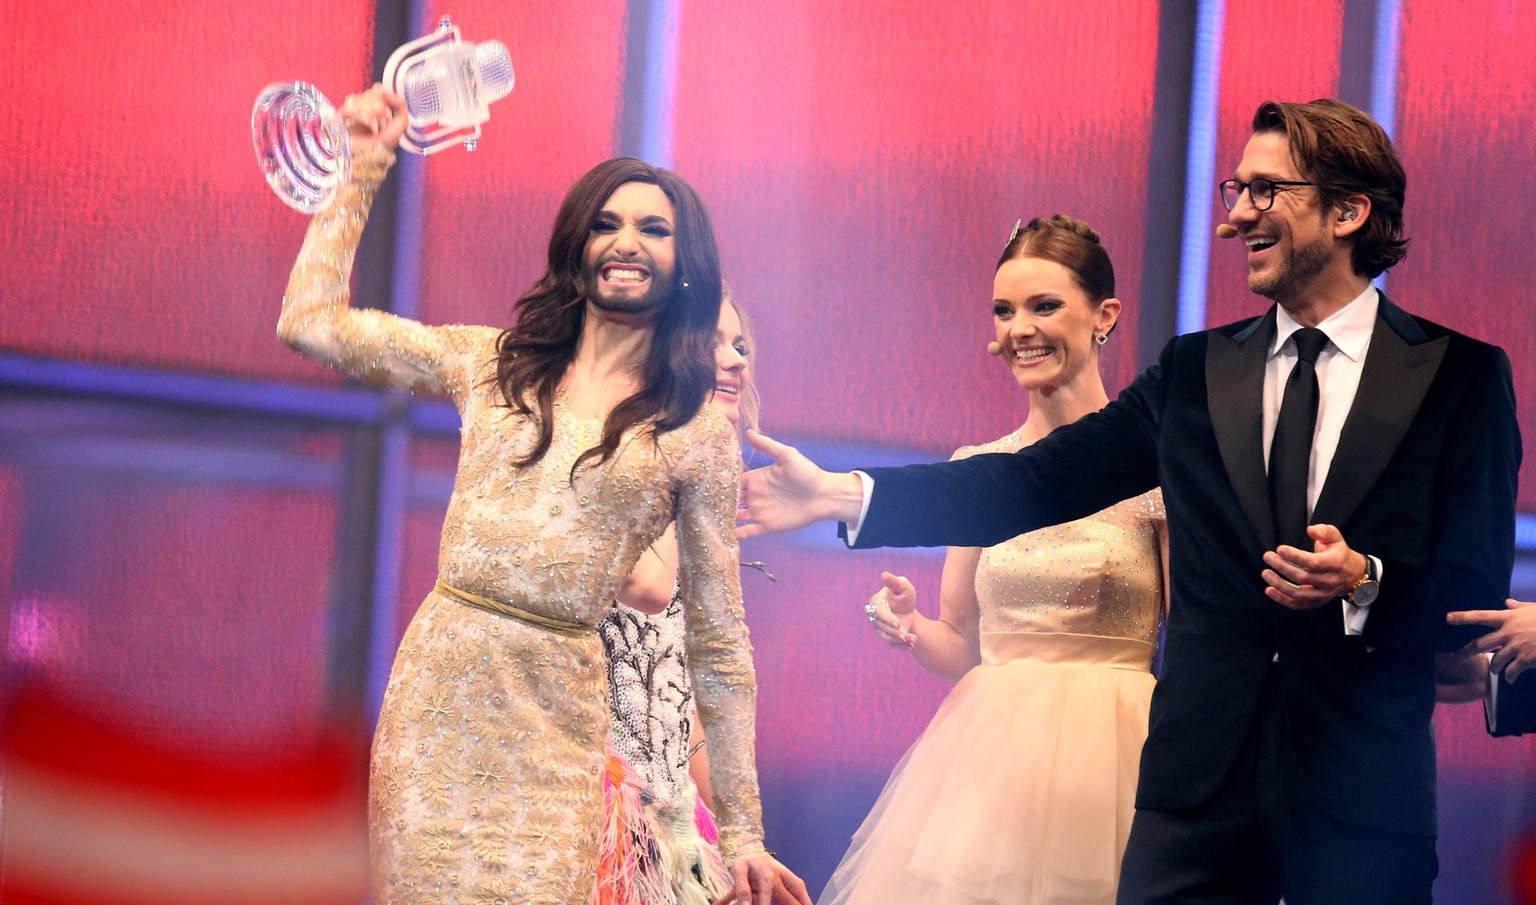 epa04200440 Conchita Wurst representing Austria (L) celebrates near the presenters Lise Rønne (2-R) and Nikolaj Koppel after winning the grand final of the 59th Eurovision Song Contest (ESC) in Copenhagen, Denmark, 10 May 2014.  EPA/JOERG CARSTENSEN